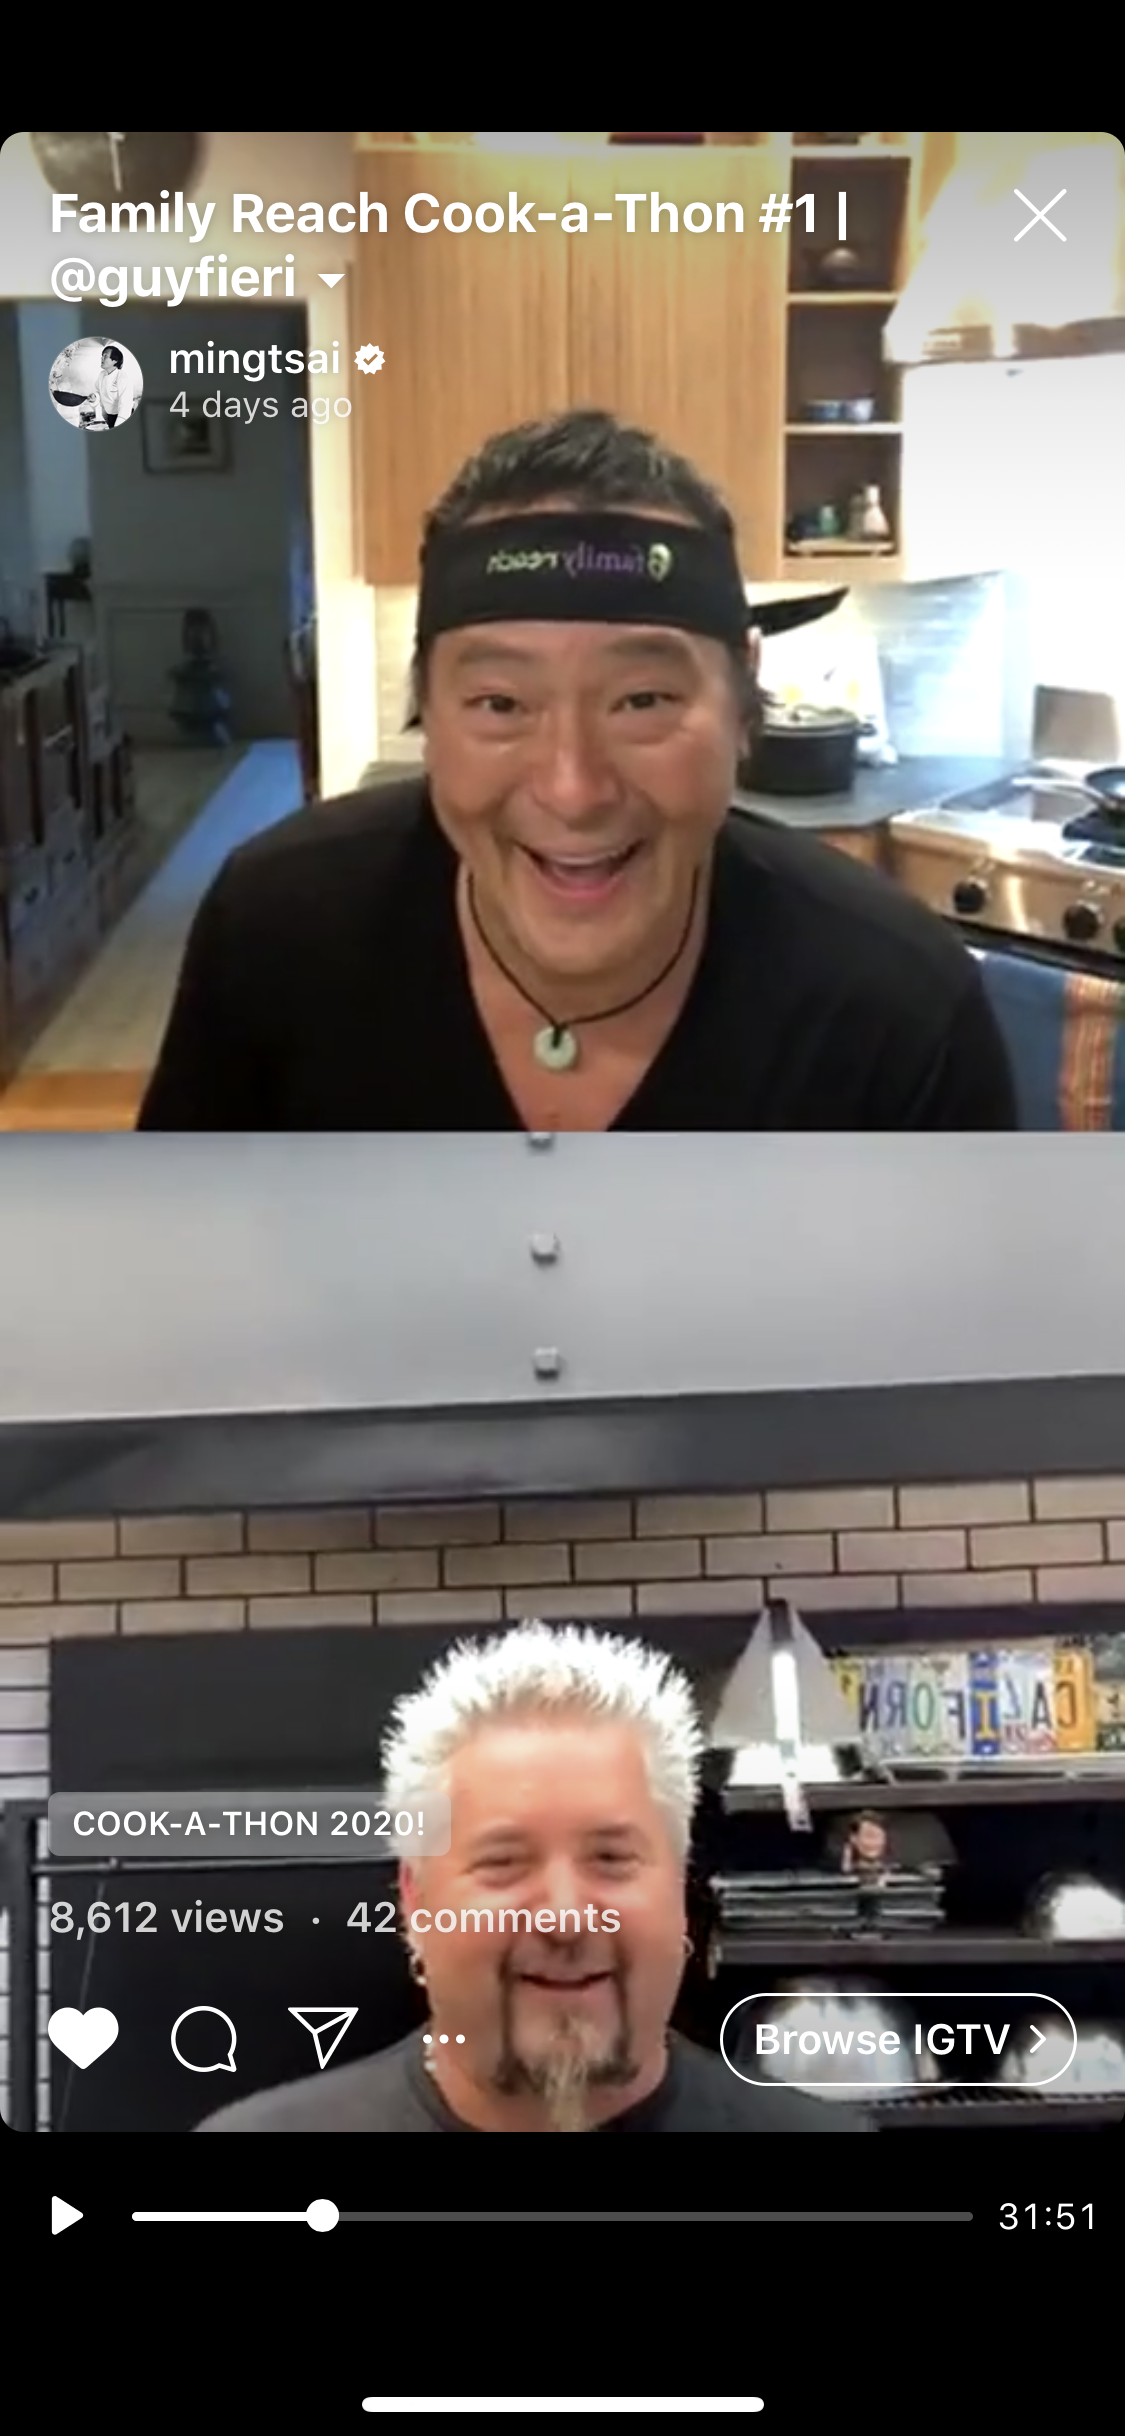 Chef Ming and Guy Fieri